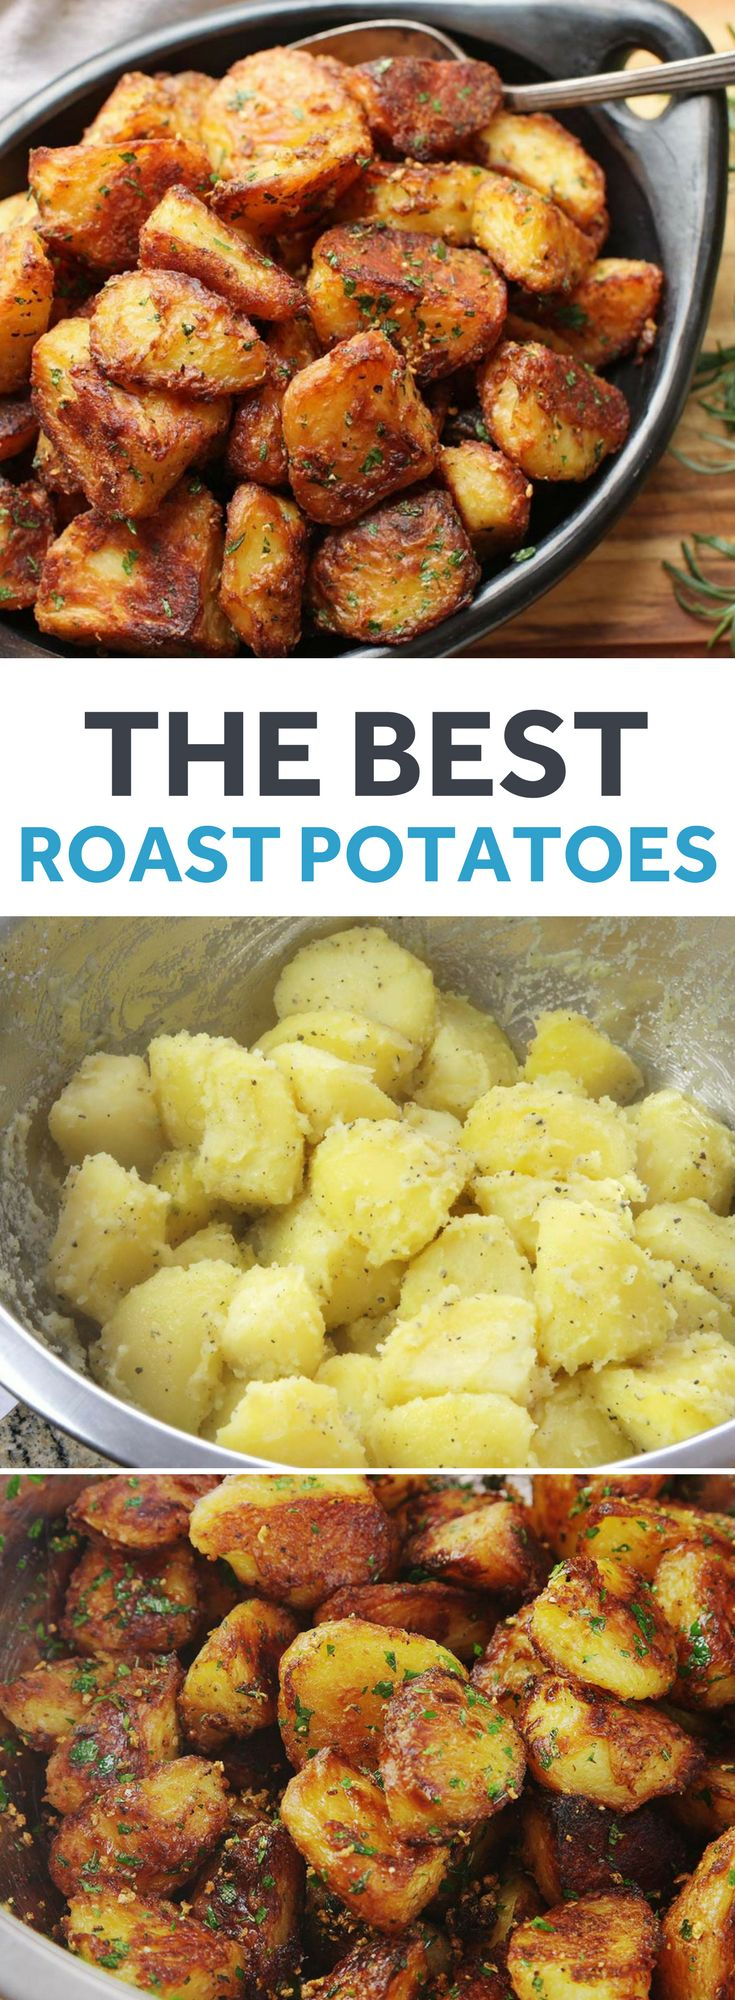 These will be greatest roast potatoes youve ever tasted: incredibly crisp and crunchy on the outside, with centers that are creamy and packed with potato flavor. I dare you to make them and not love them. I double-dare you.